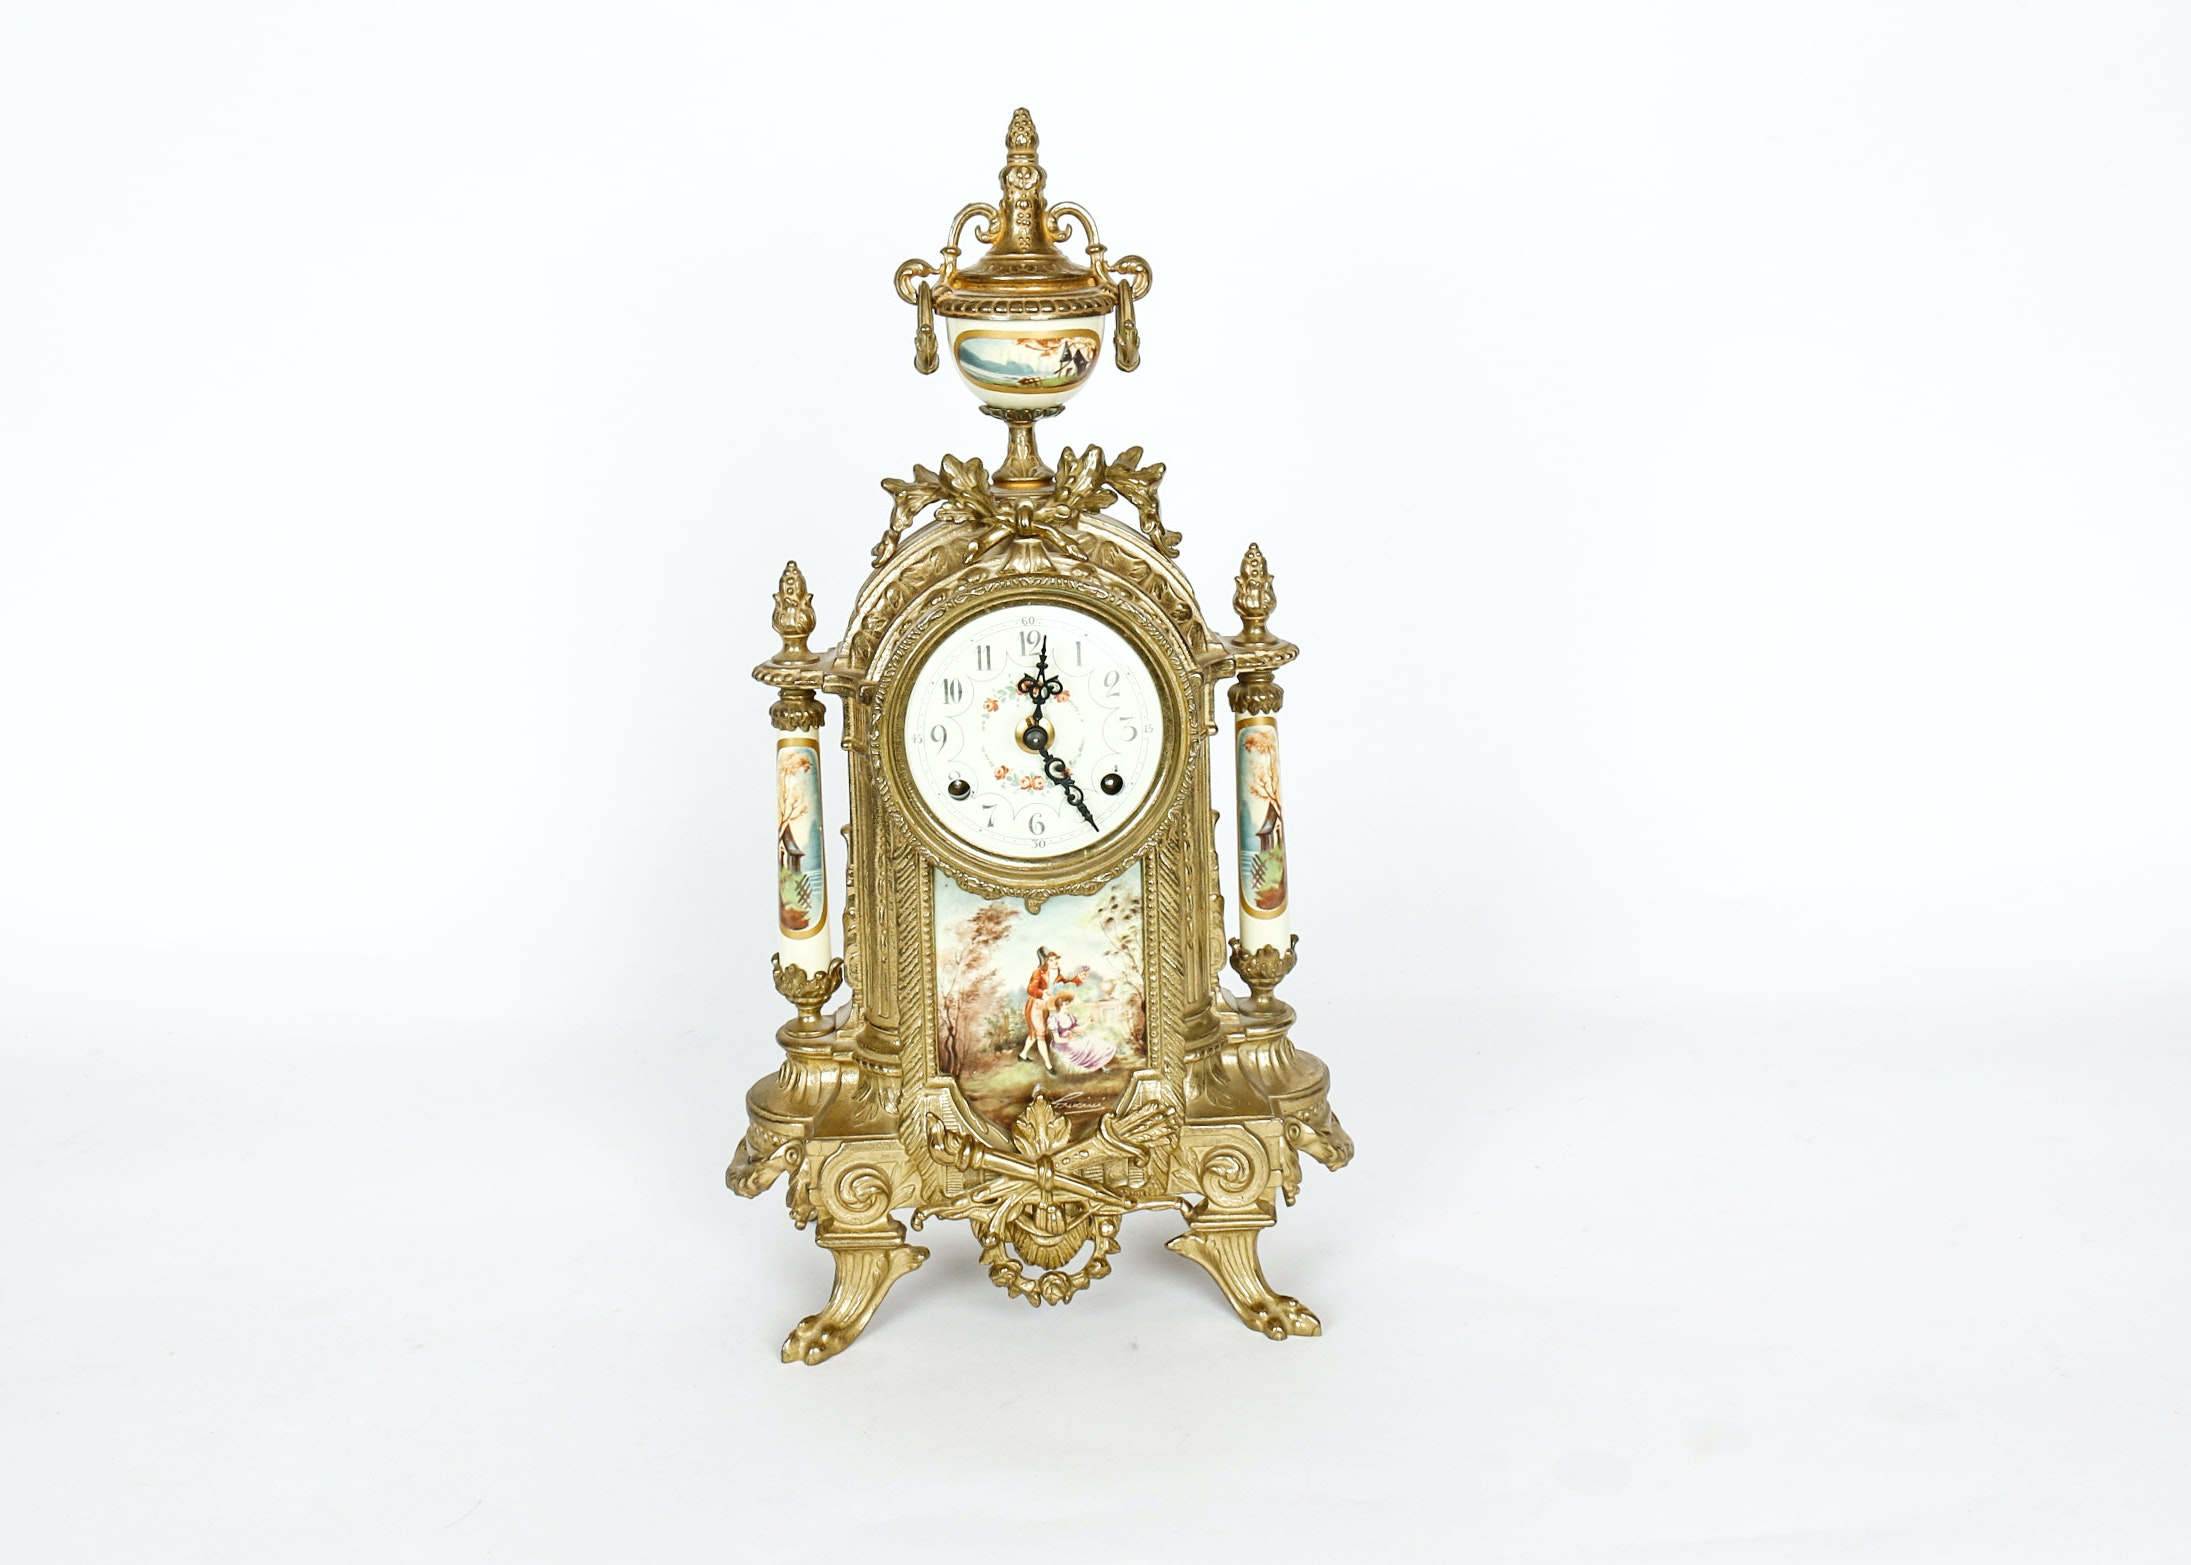 Metal Gold Tone Clock with Floral and Colonial Era Accents